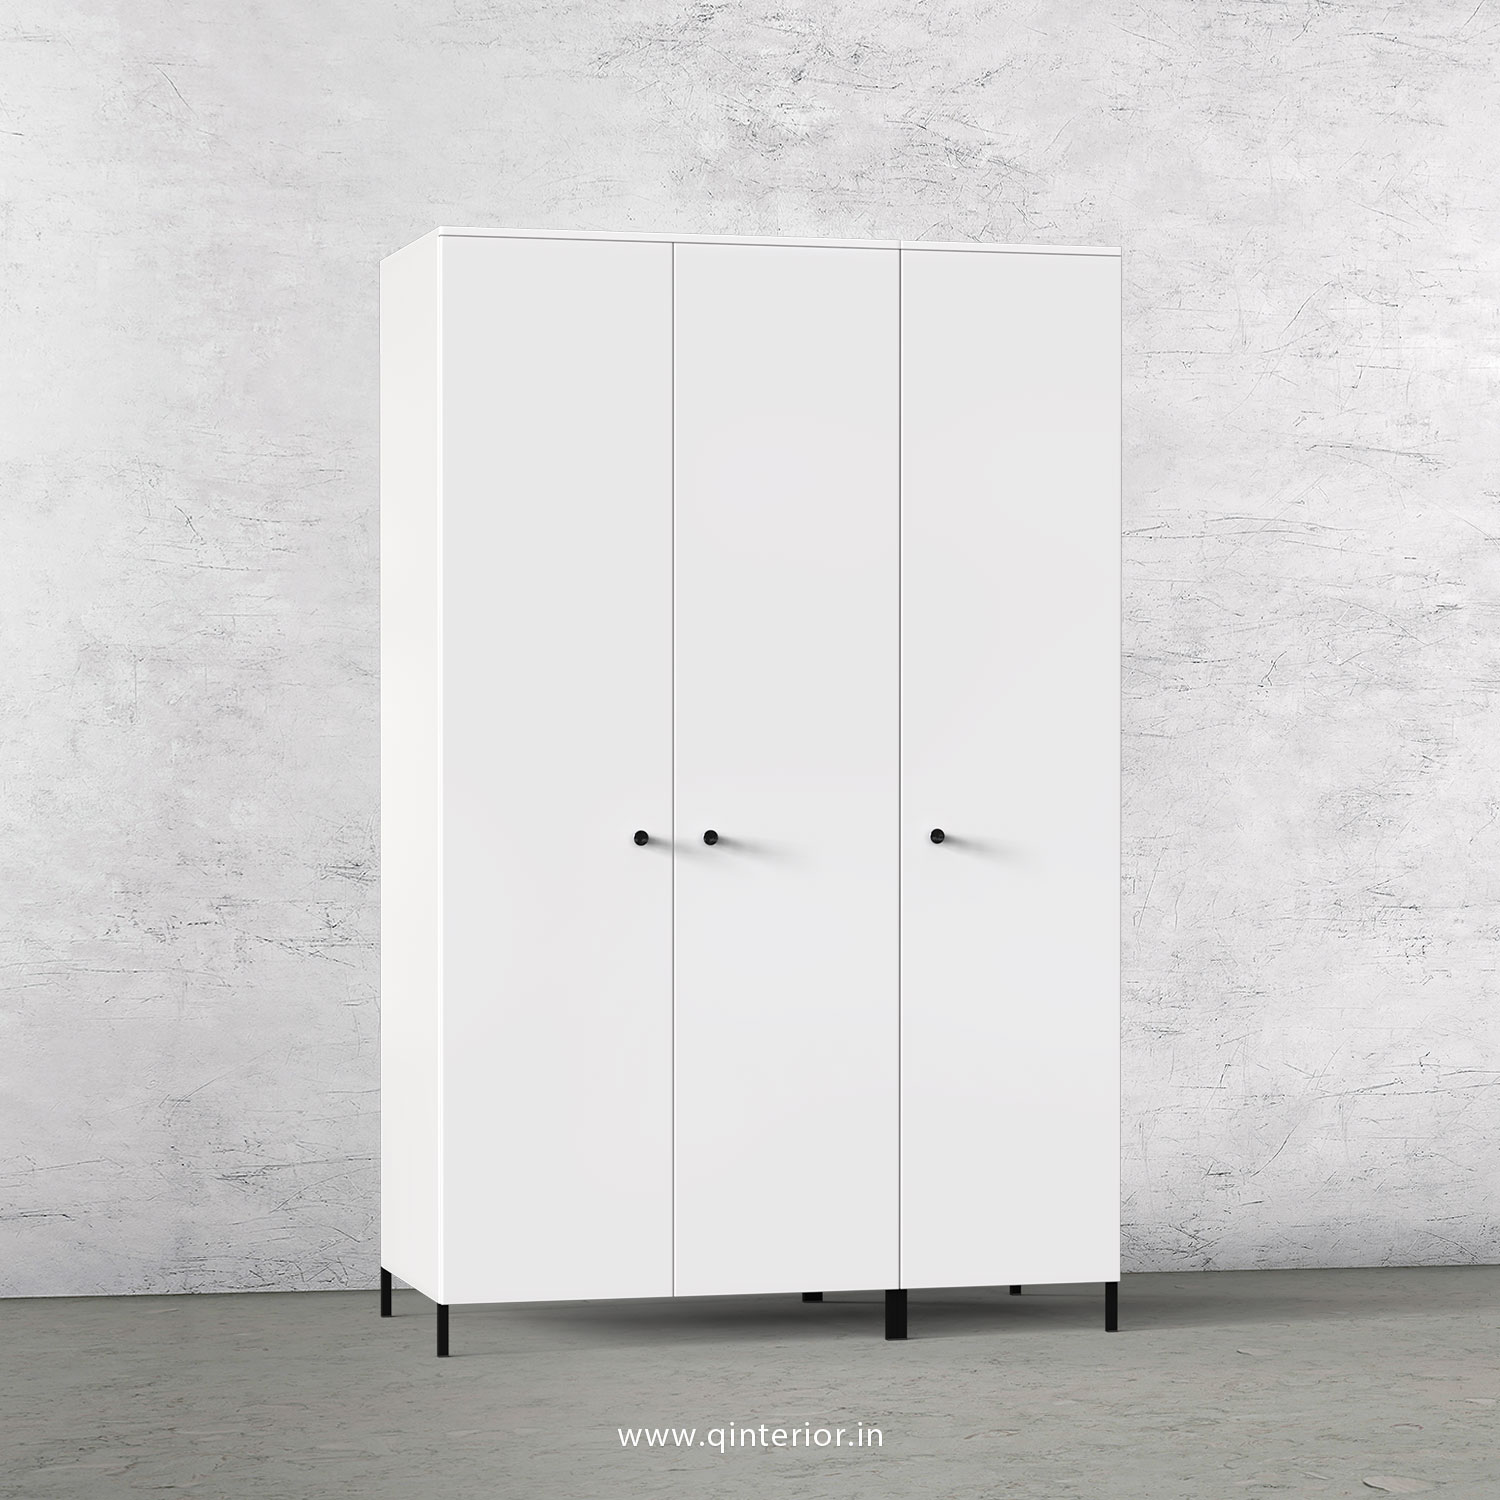 Stable 3 Door Wardrobe in White Finish – TWRD001 C4